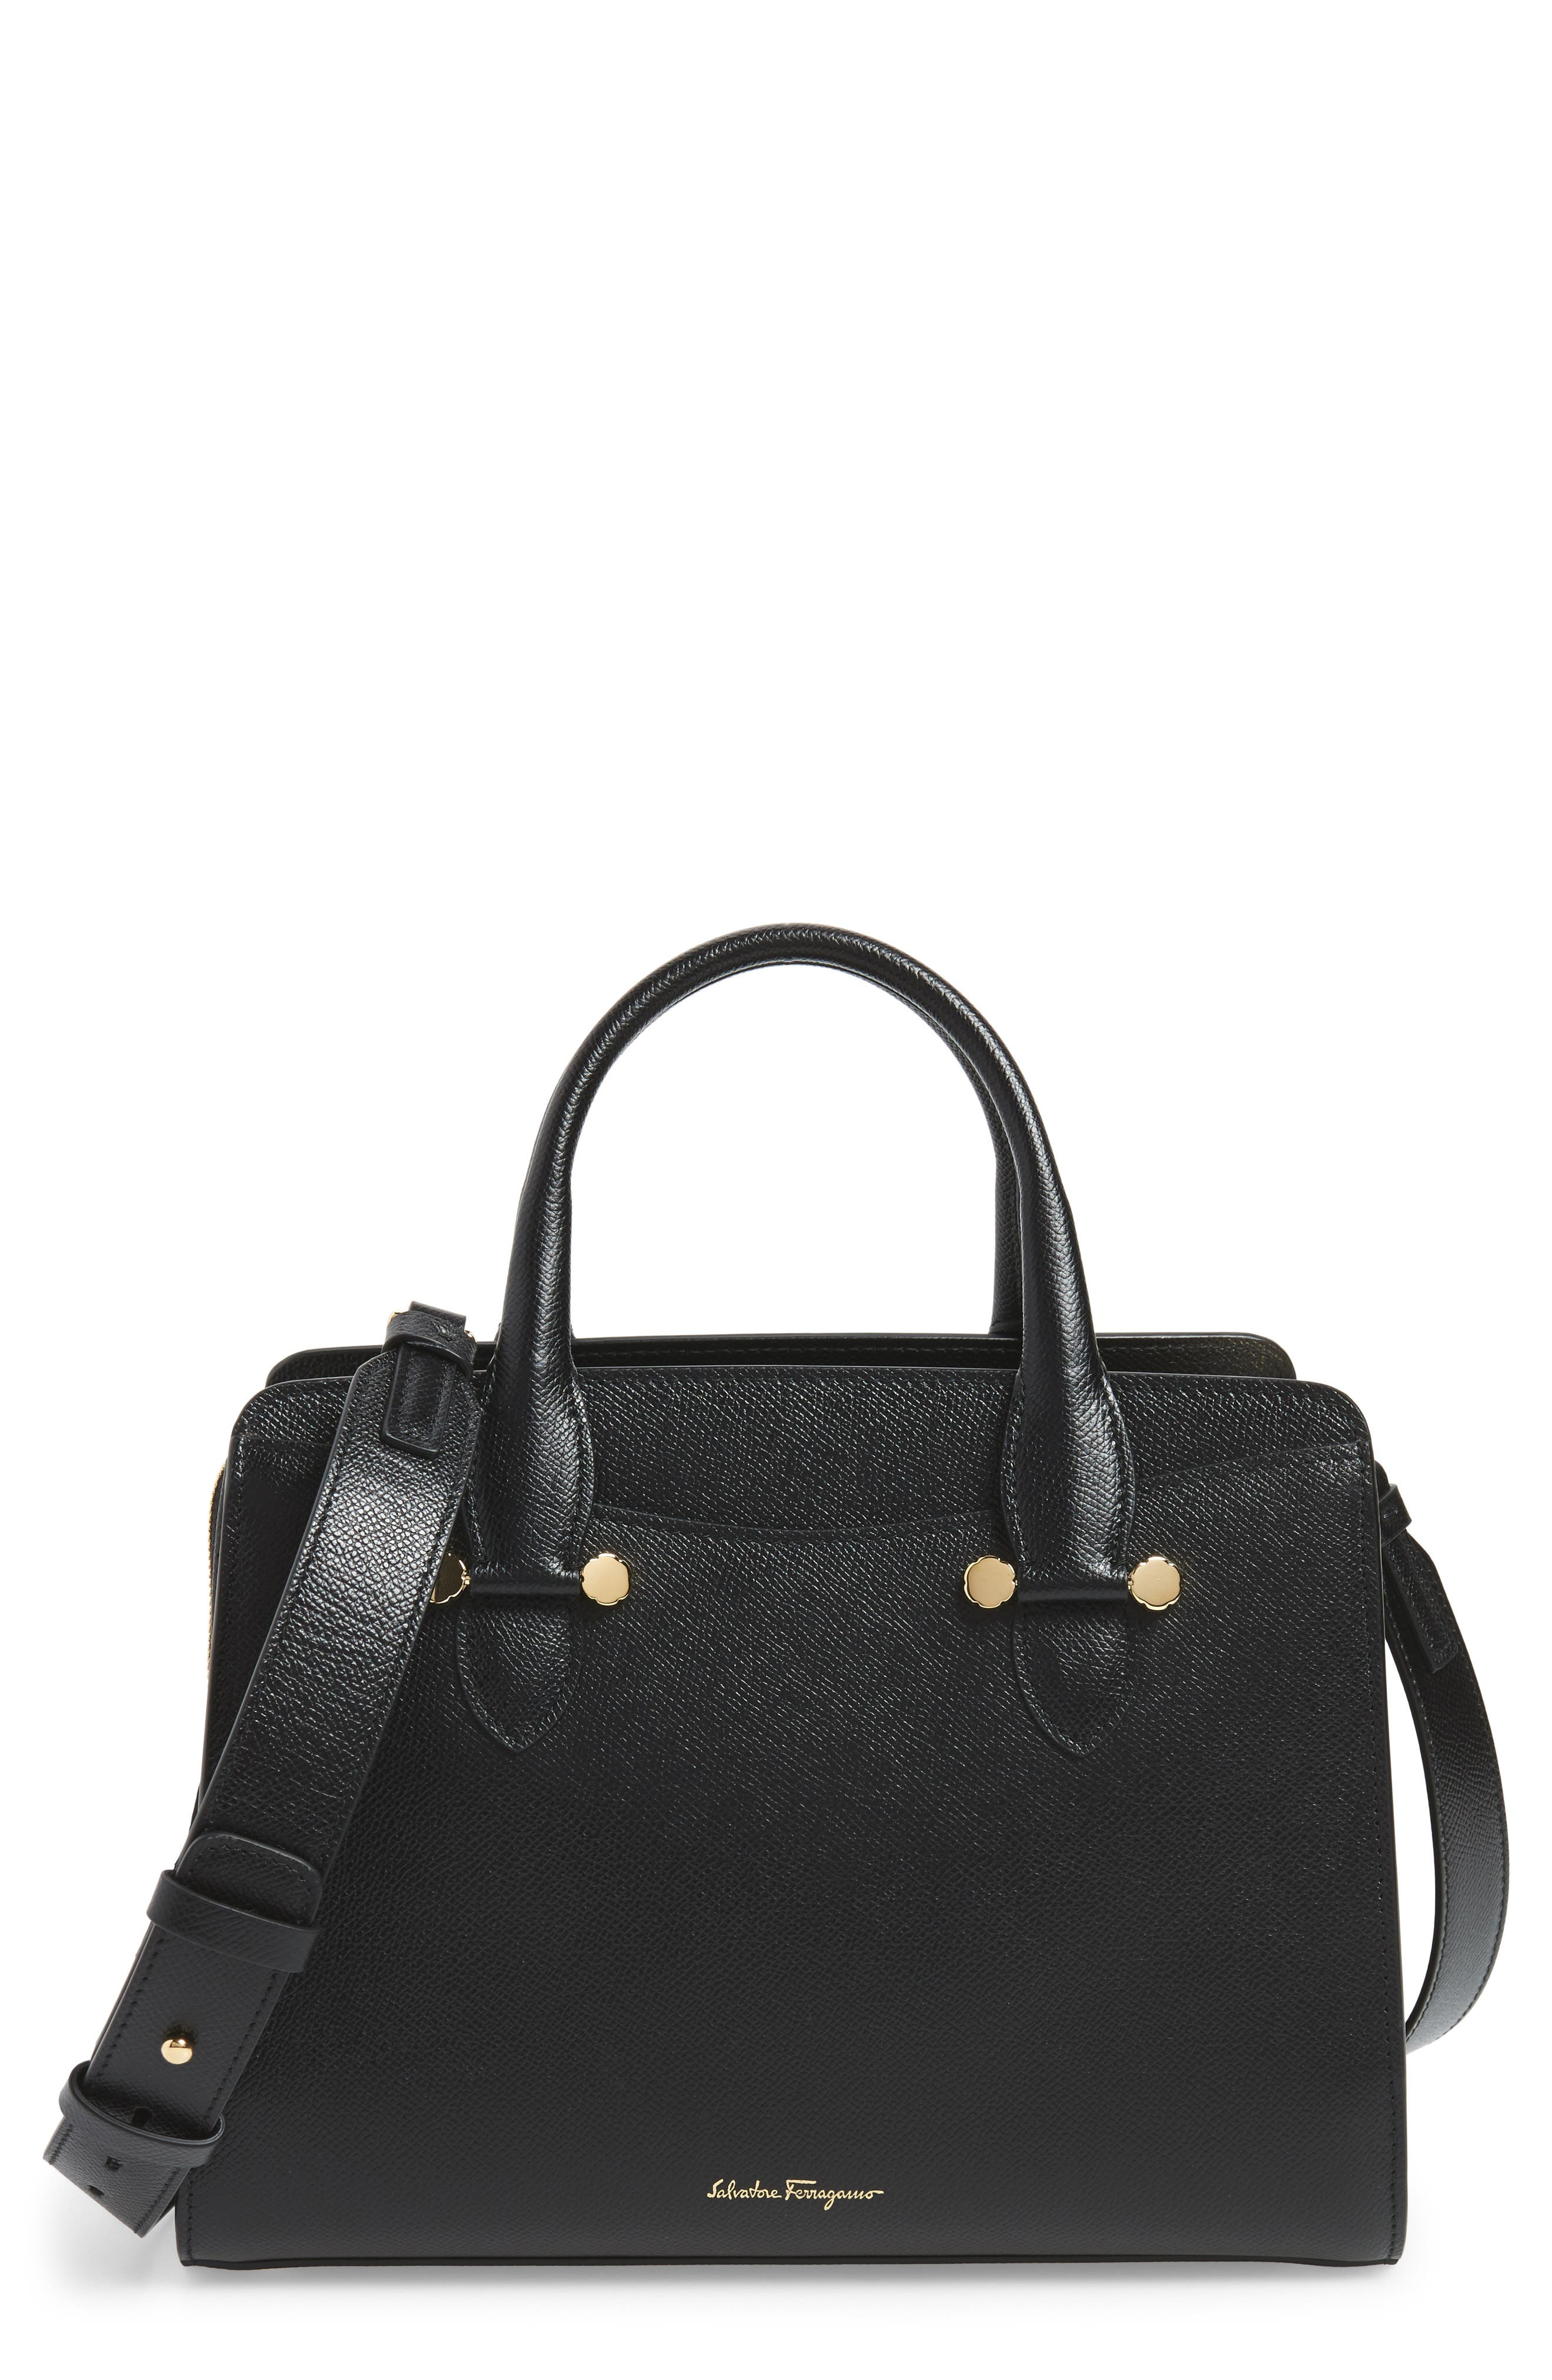 Small Today Satchel,                             Main thumbnail 1, color,                             Nero